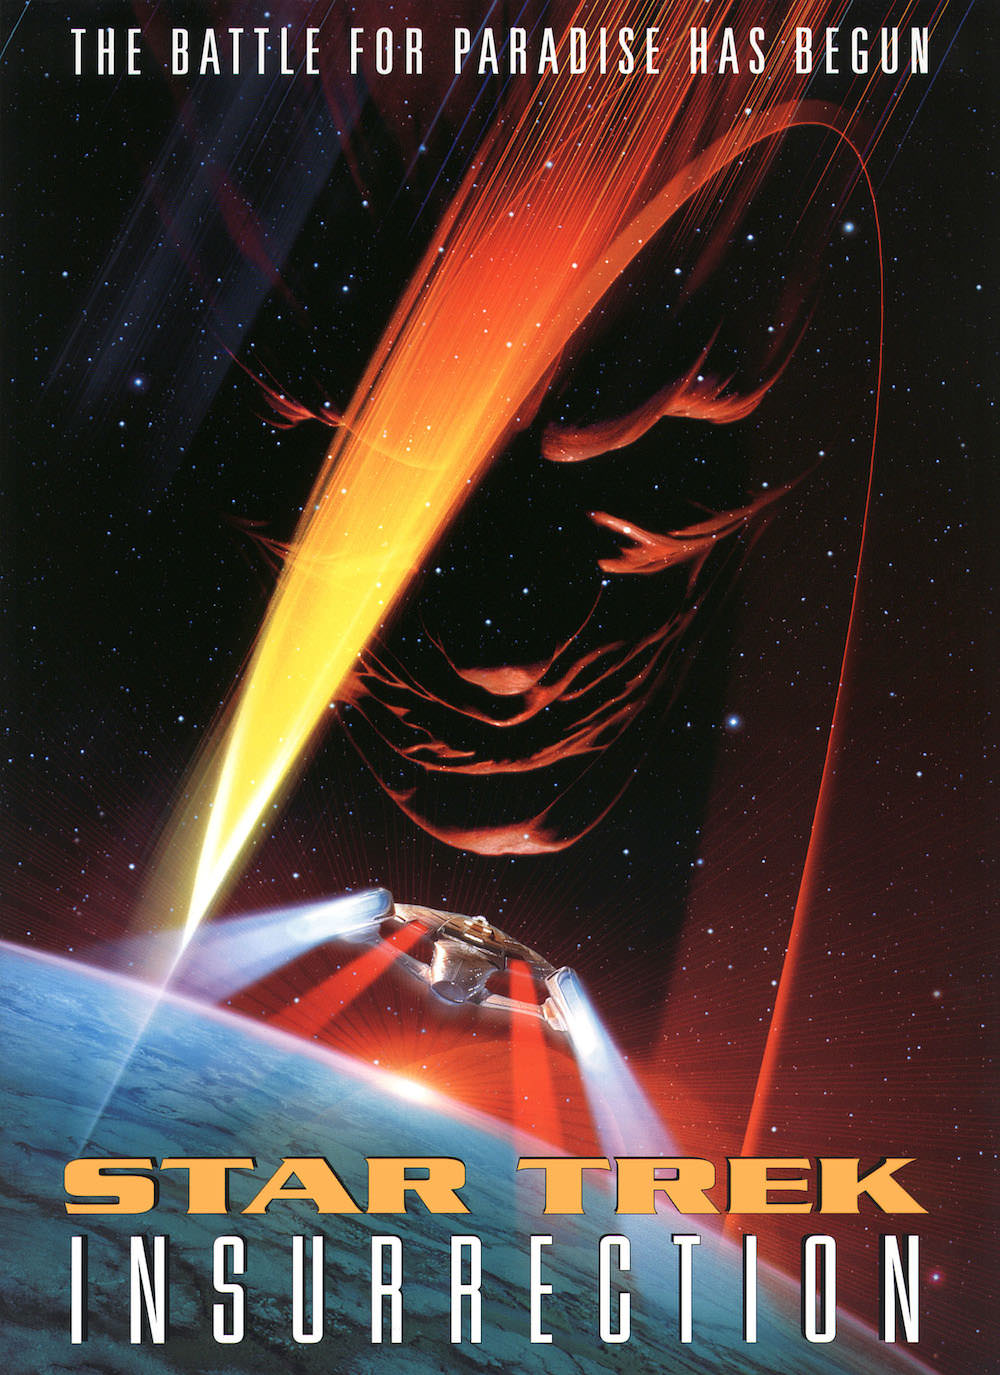 Star trek insurrection frakes